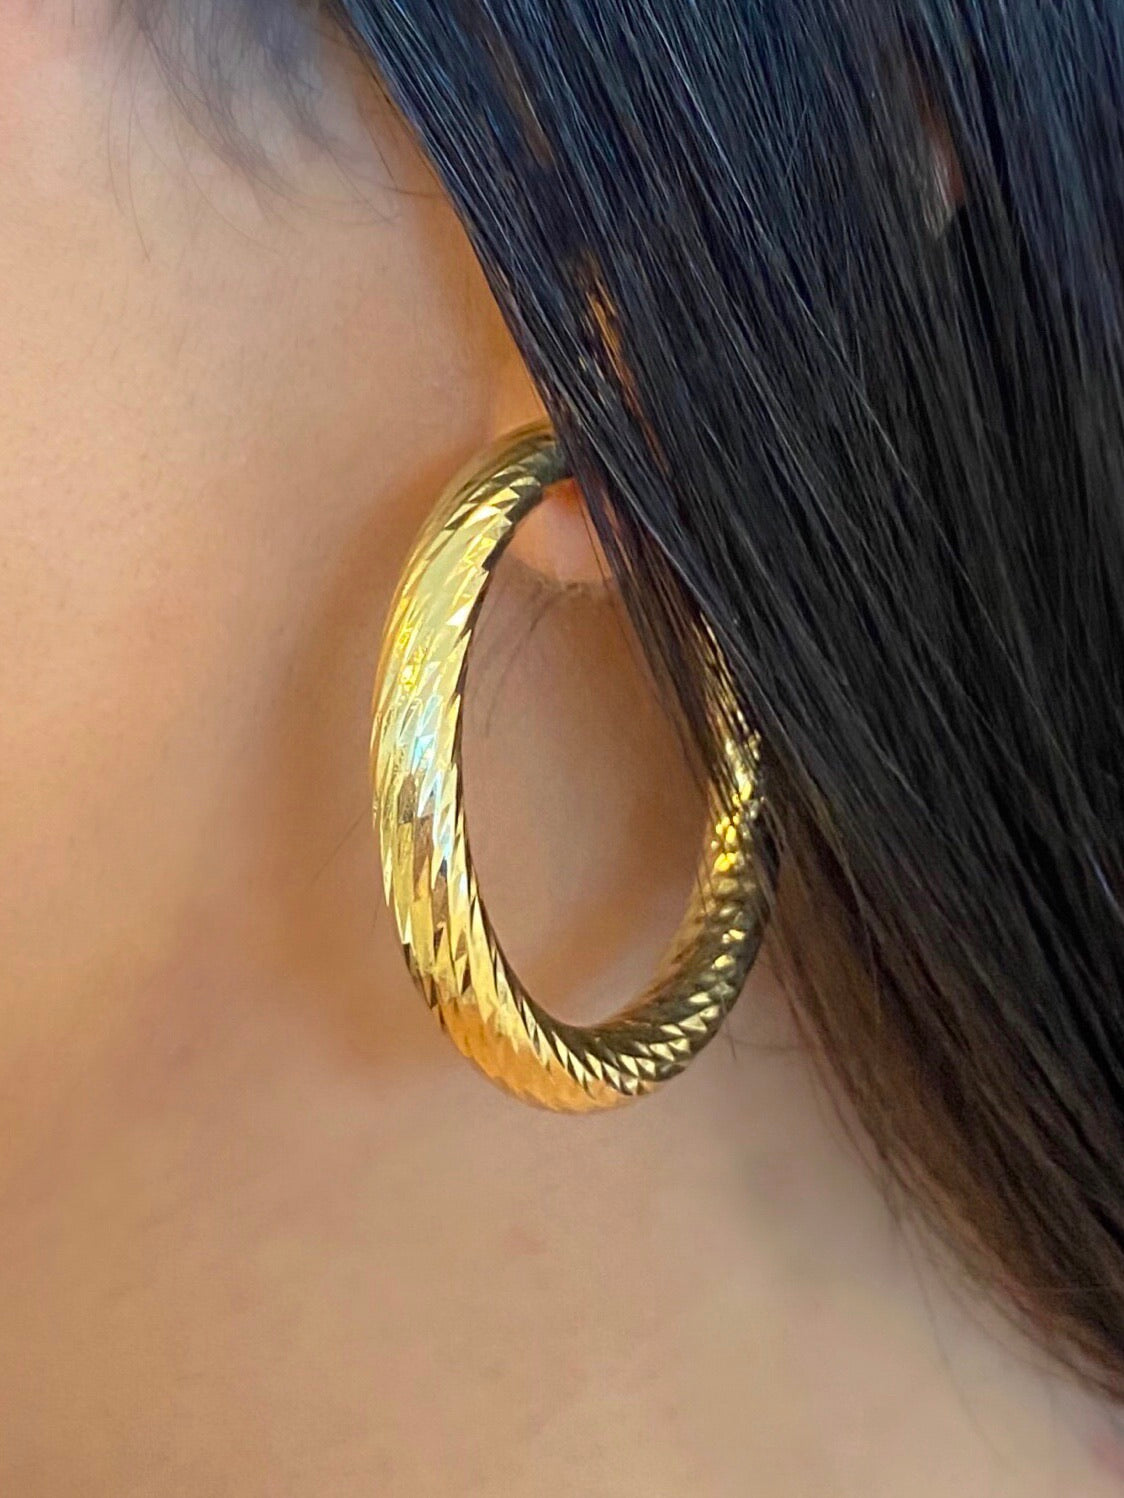 gold / silver hoop earrings, embossed detailing, latch hook closure